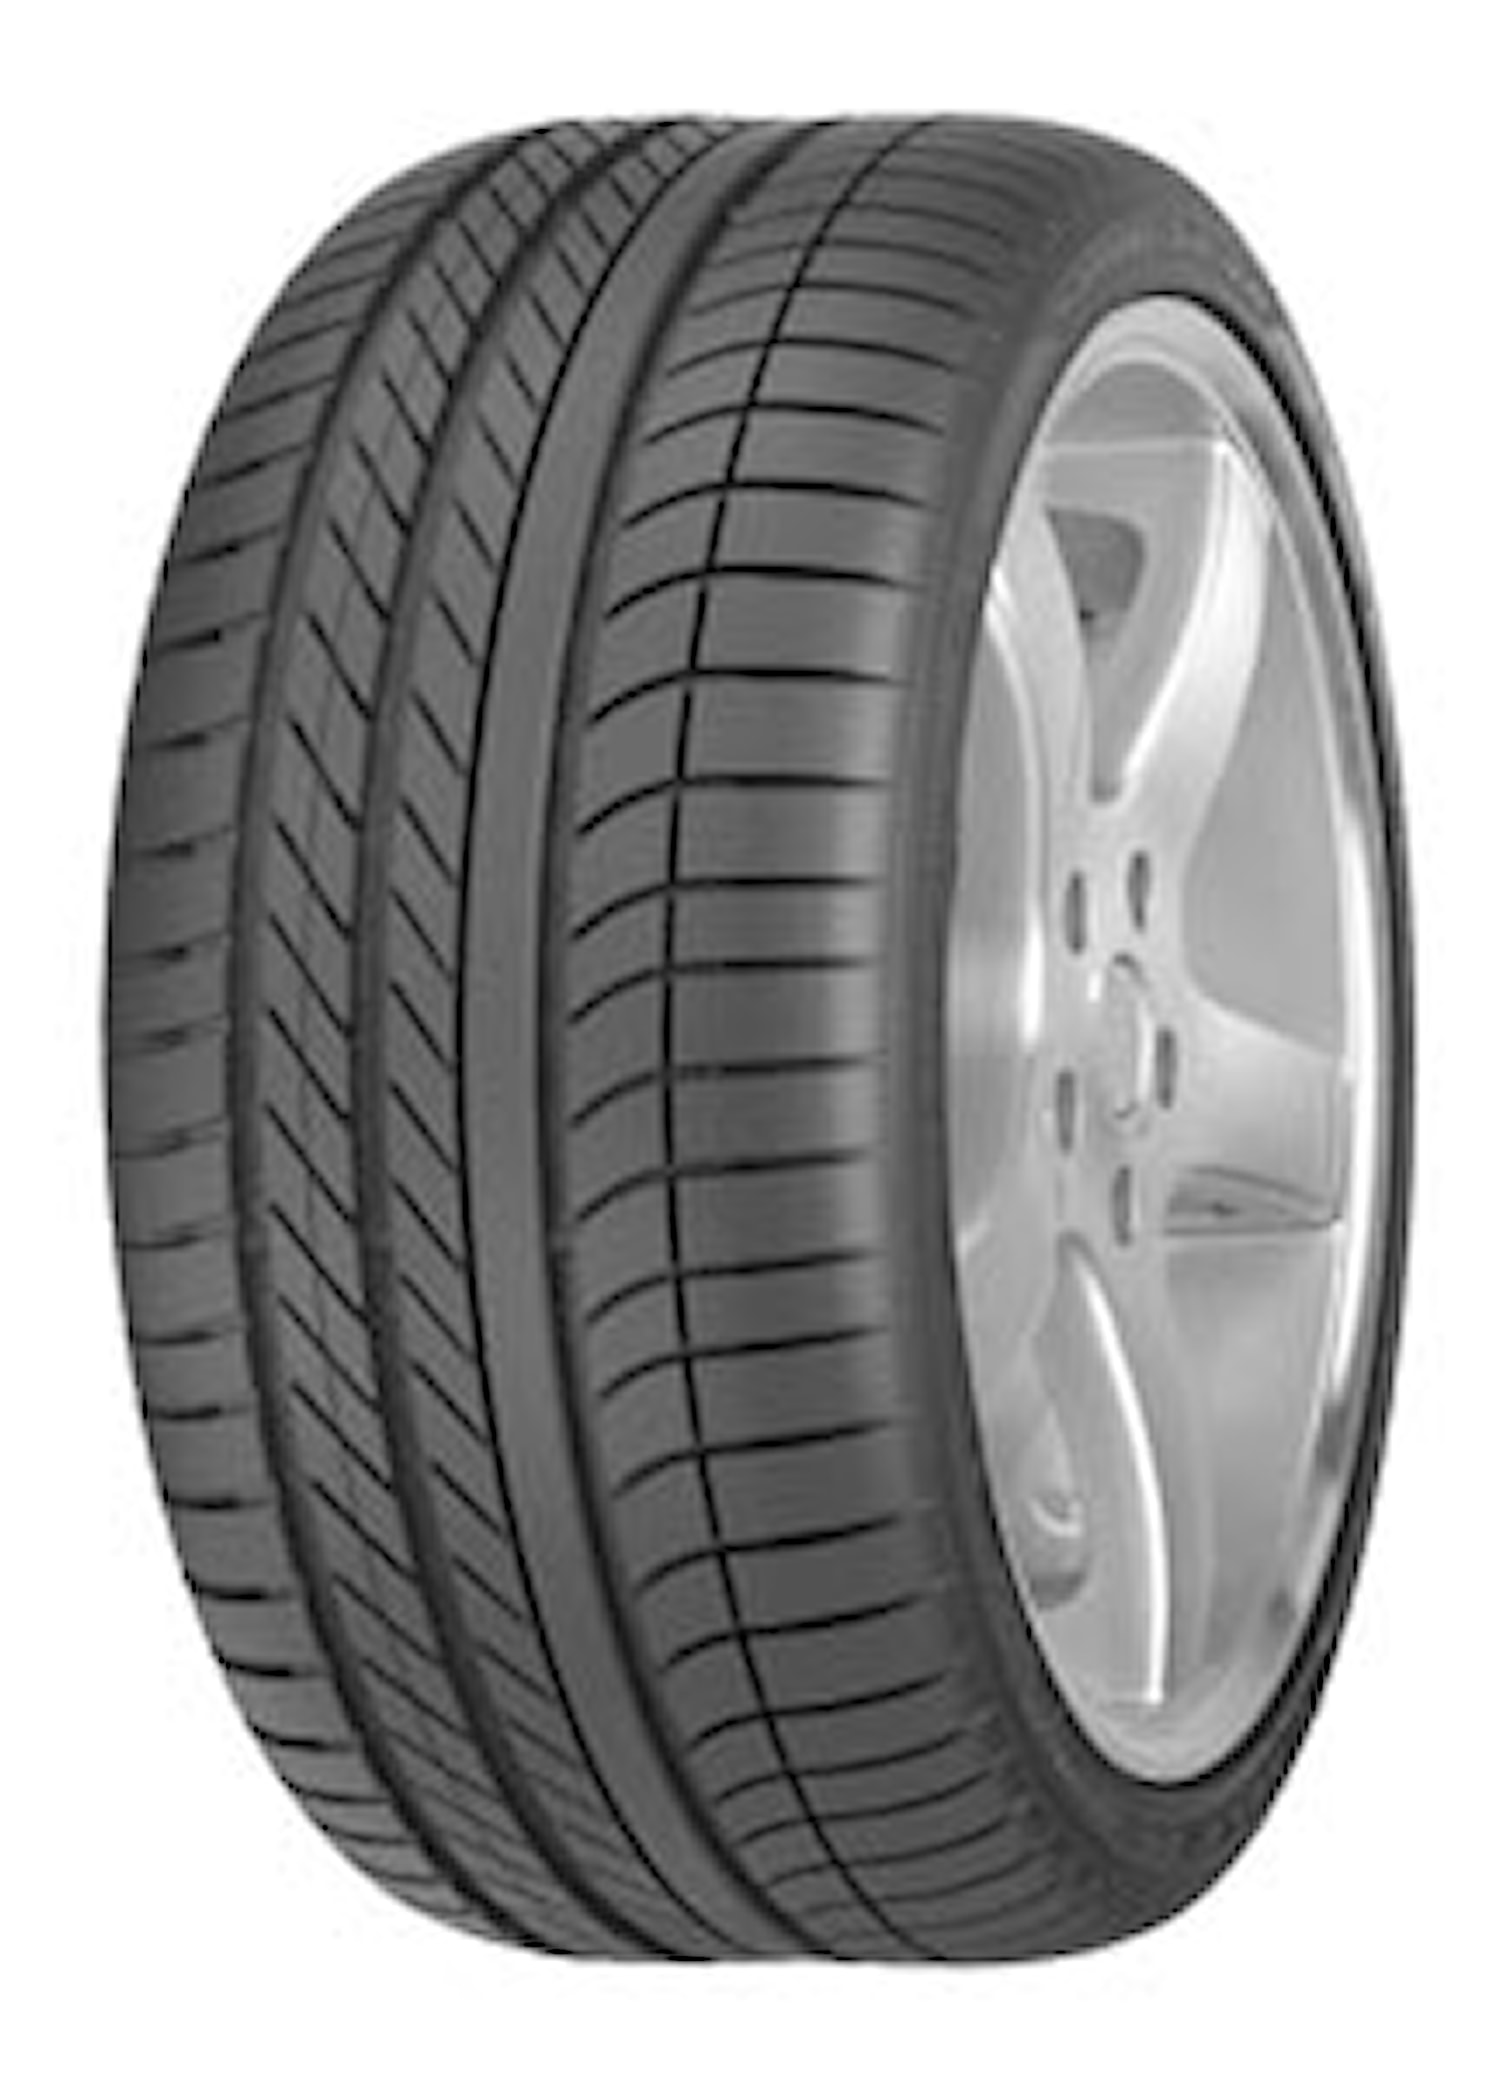 Goodyear EagleF1 Asy.2 AO 112Y